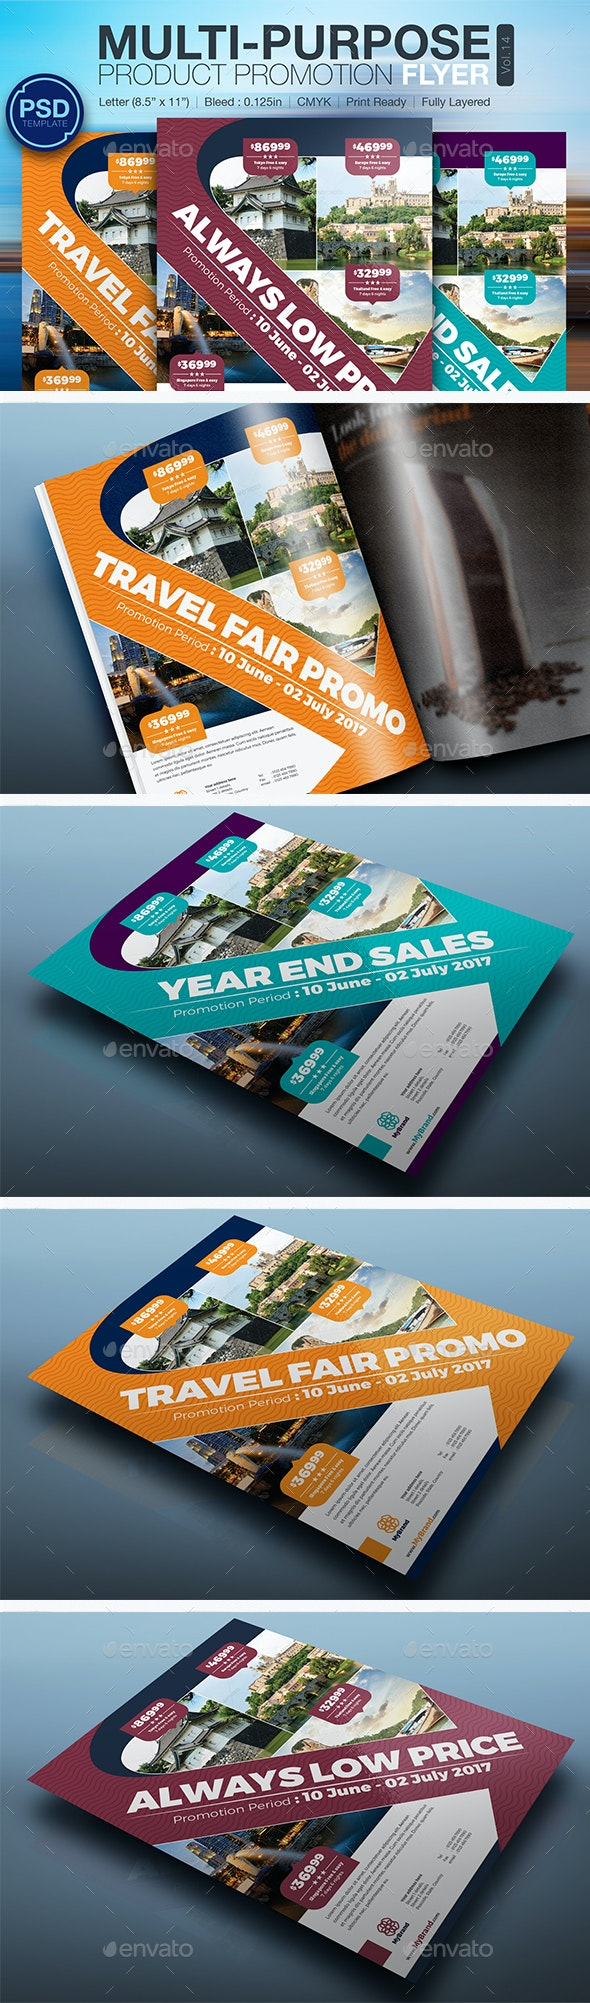 Multi-Purpose Product Promotion Flyer Vol.14 - Commerce Flyers